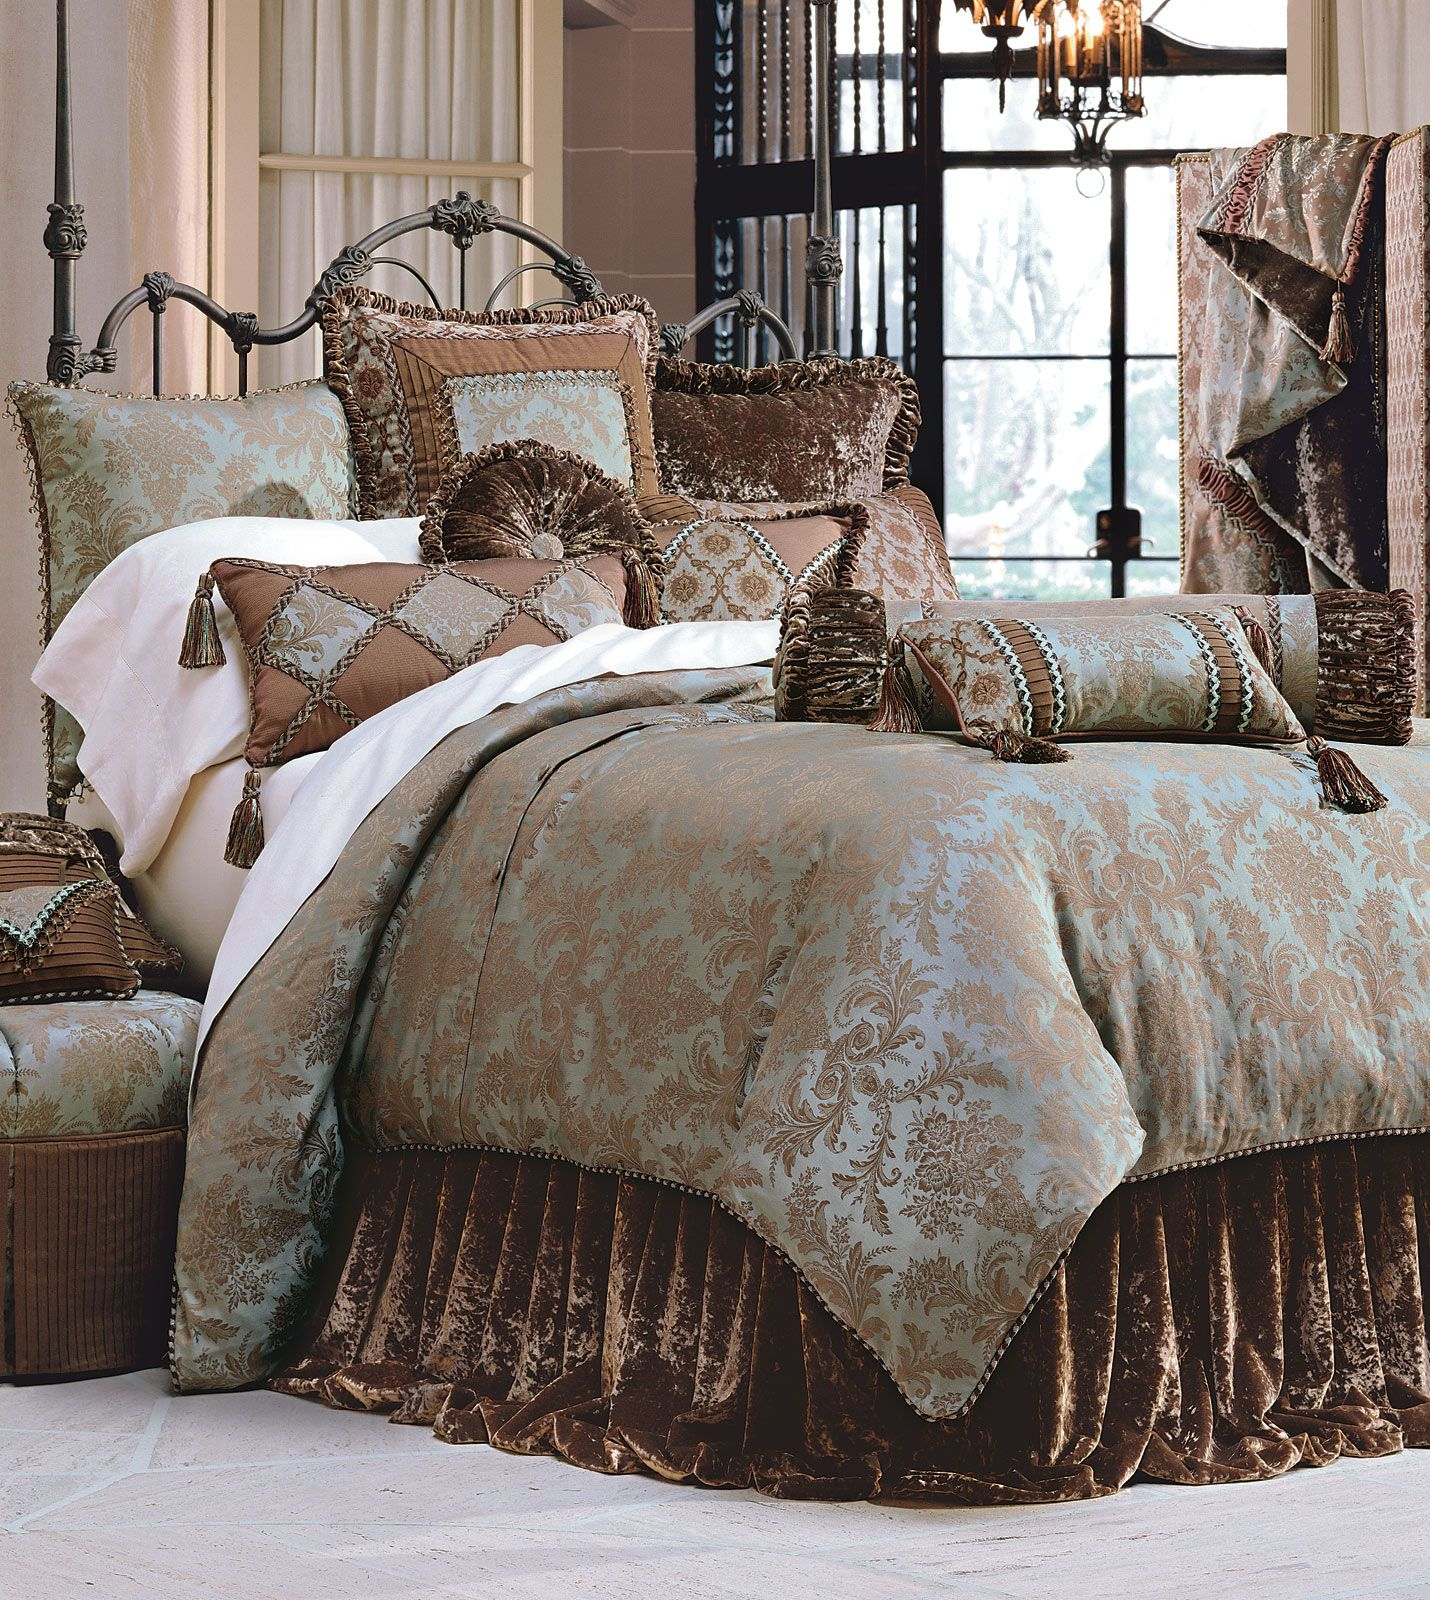 Foscari bedset bedspreads in 2019 Luxury bedding